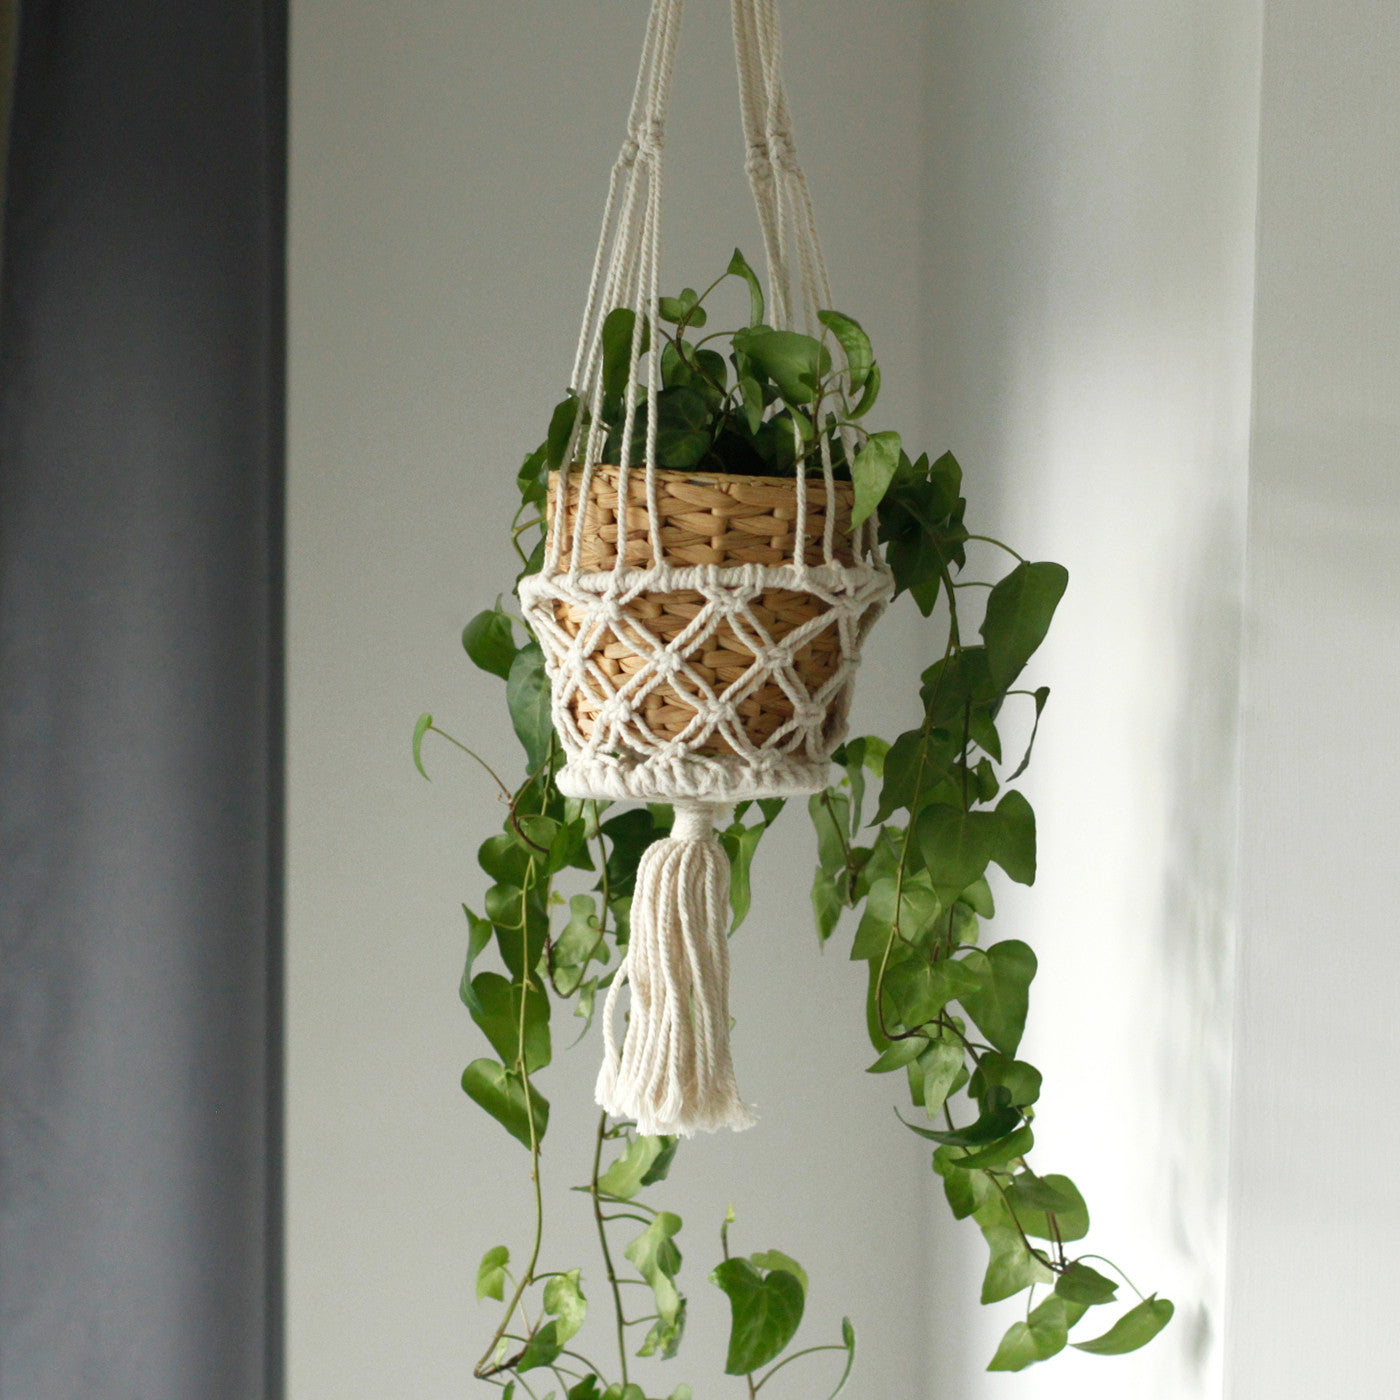 Macrame Pot Holder - Single Small Pot - Ellie J Shoppe